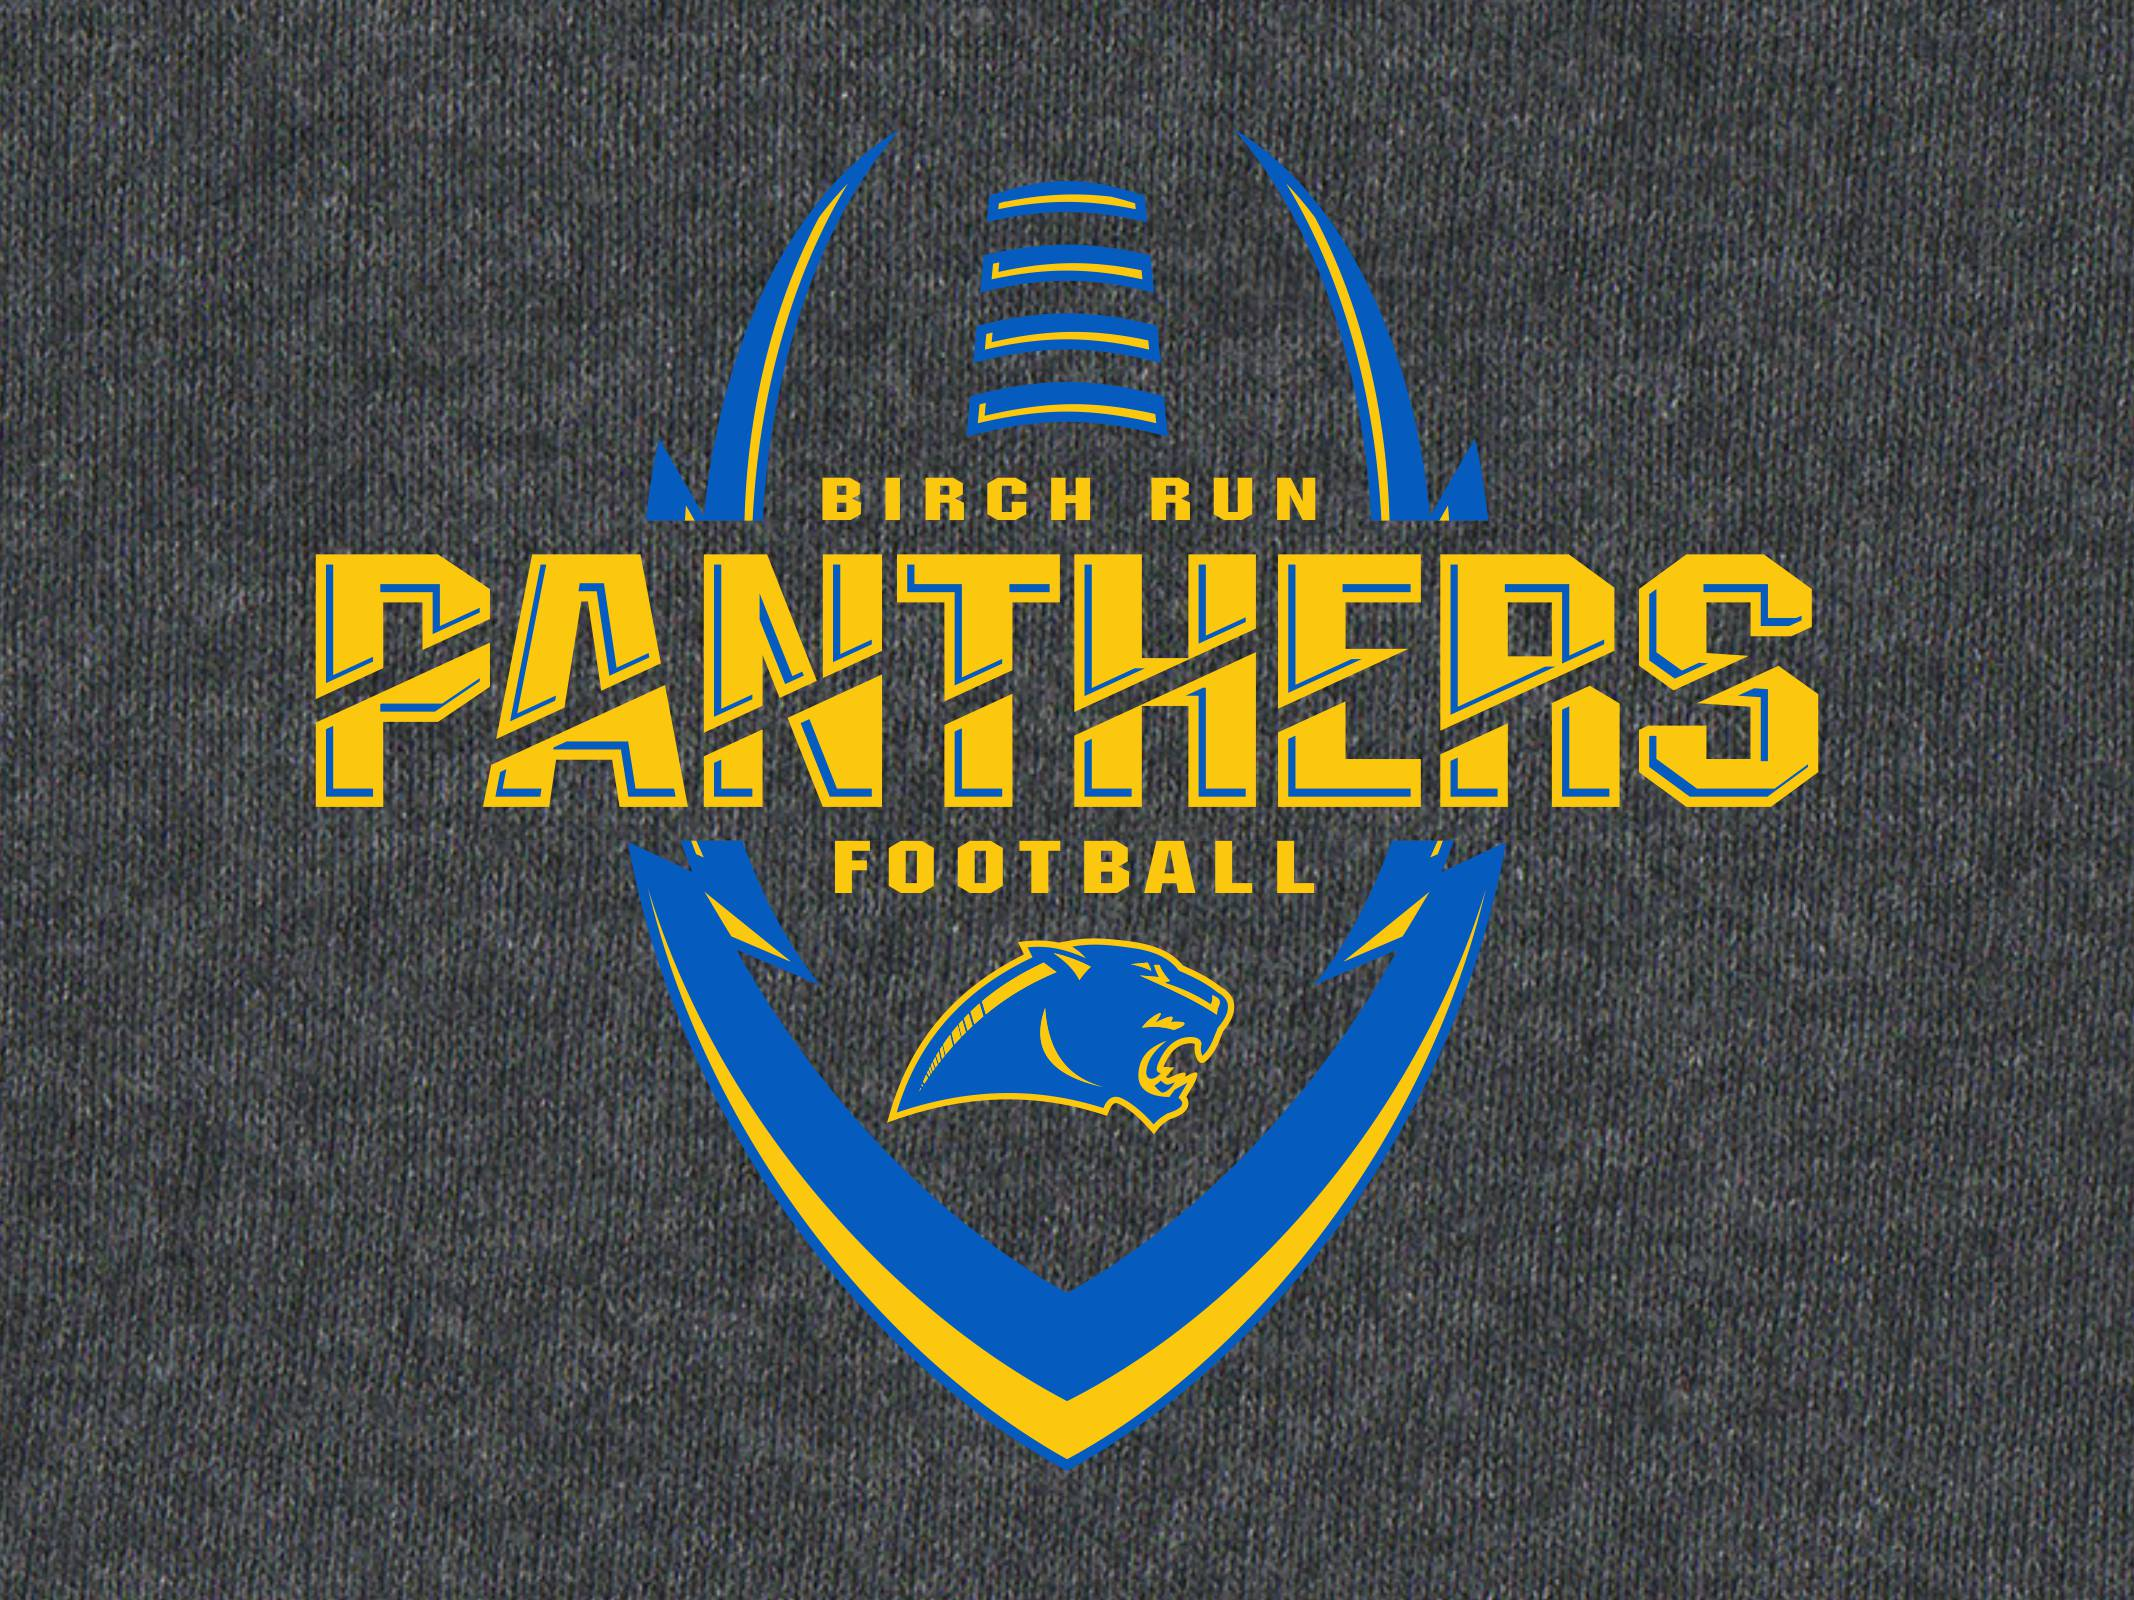 Birch Run Panthers Football